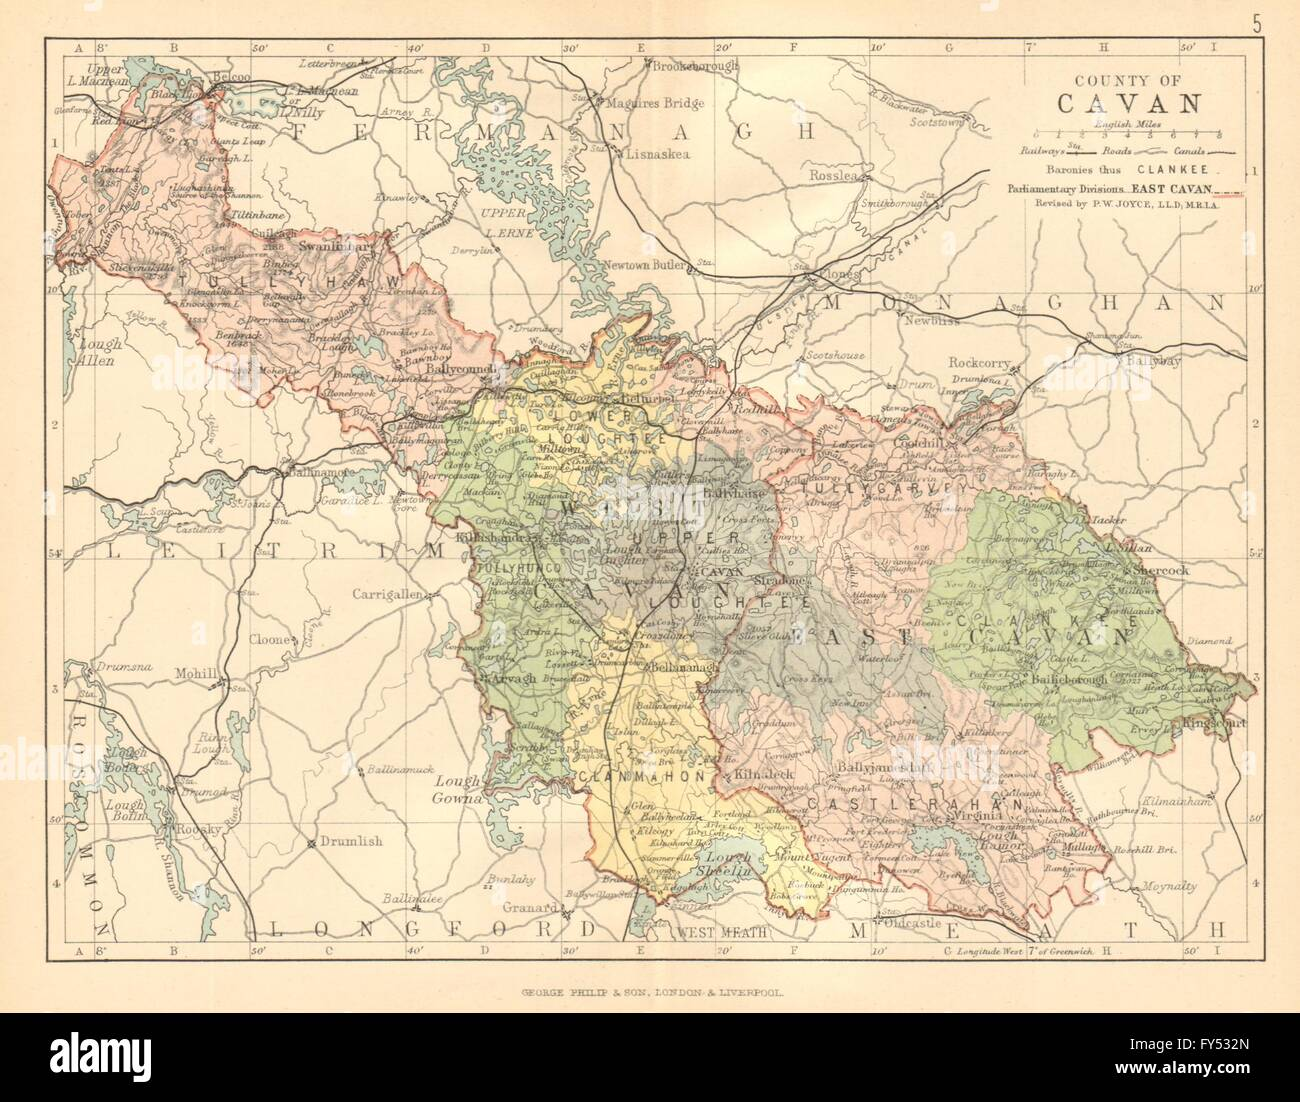 Map Of Ireland Cavan.County Cavan Antique County Map Ulster Ireland Bartholomew